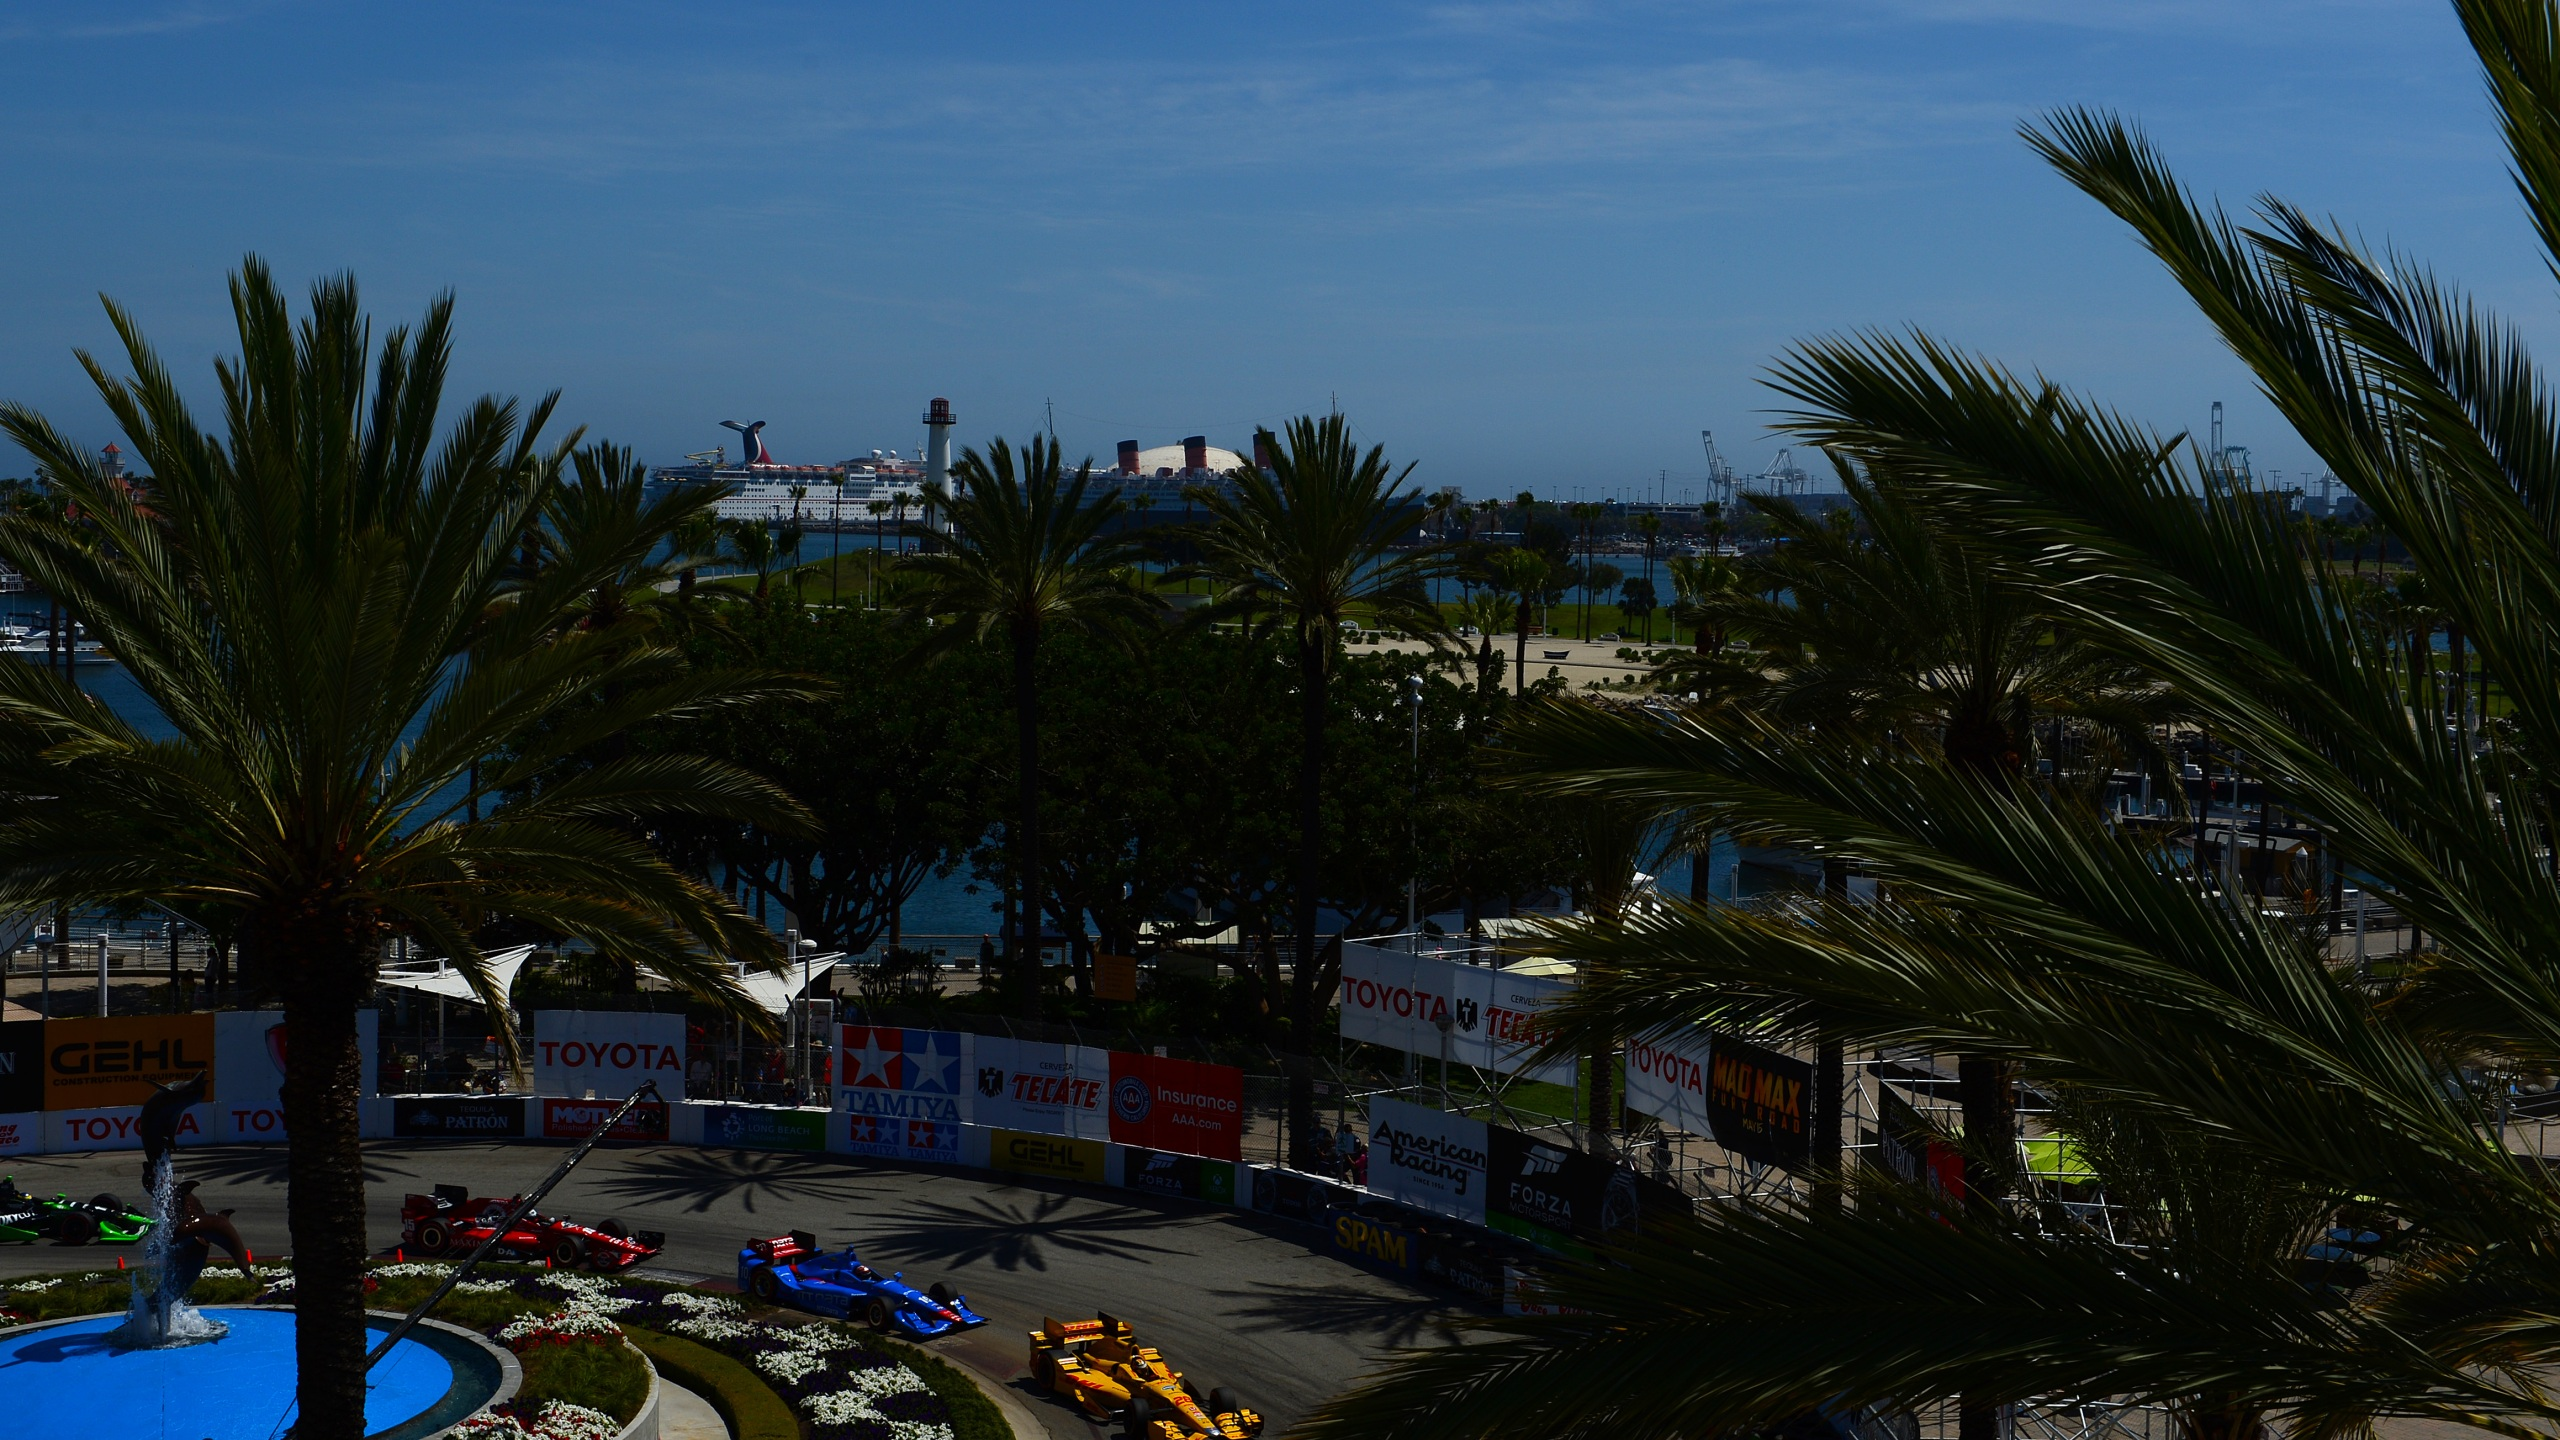 Ryan Hunter-Reay driver of the #28 DHL Andretti Autosport Honda Dallara leads a pack of cars during the Verizon IndyCar Series Toyota Grand Prix of Long Beach on April 19, 2015 on the streets of Long Beach, California. (Robert Laberge/Getty Images)